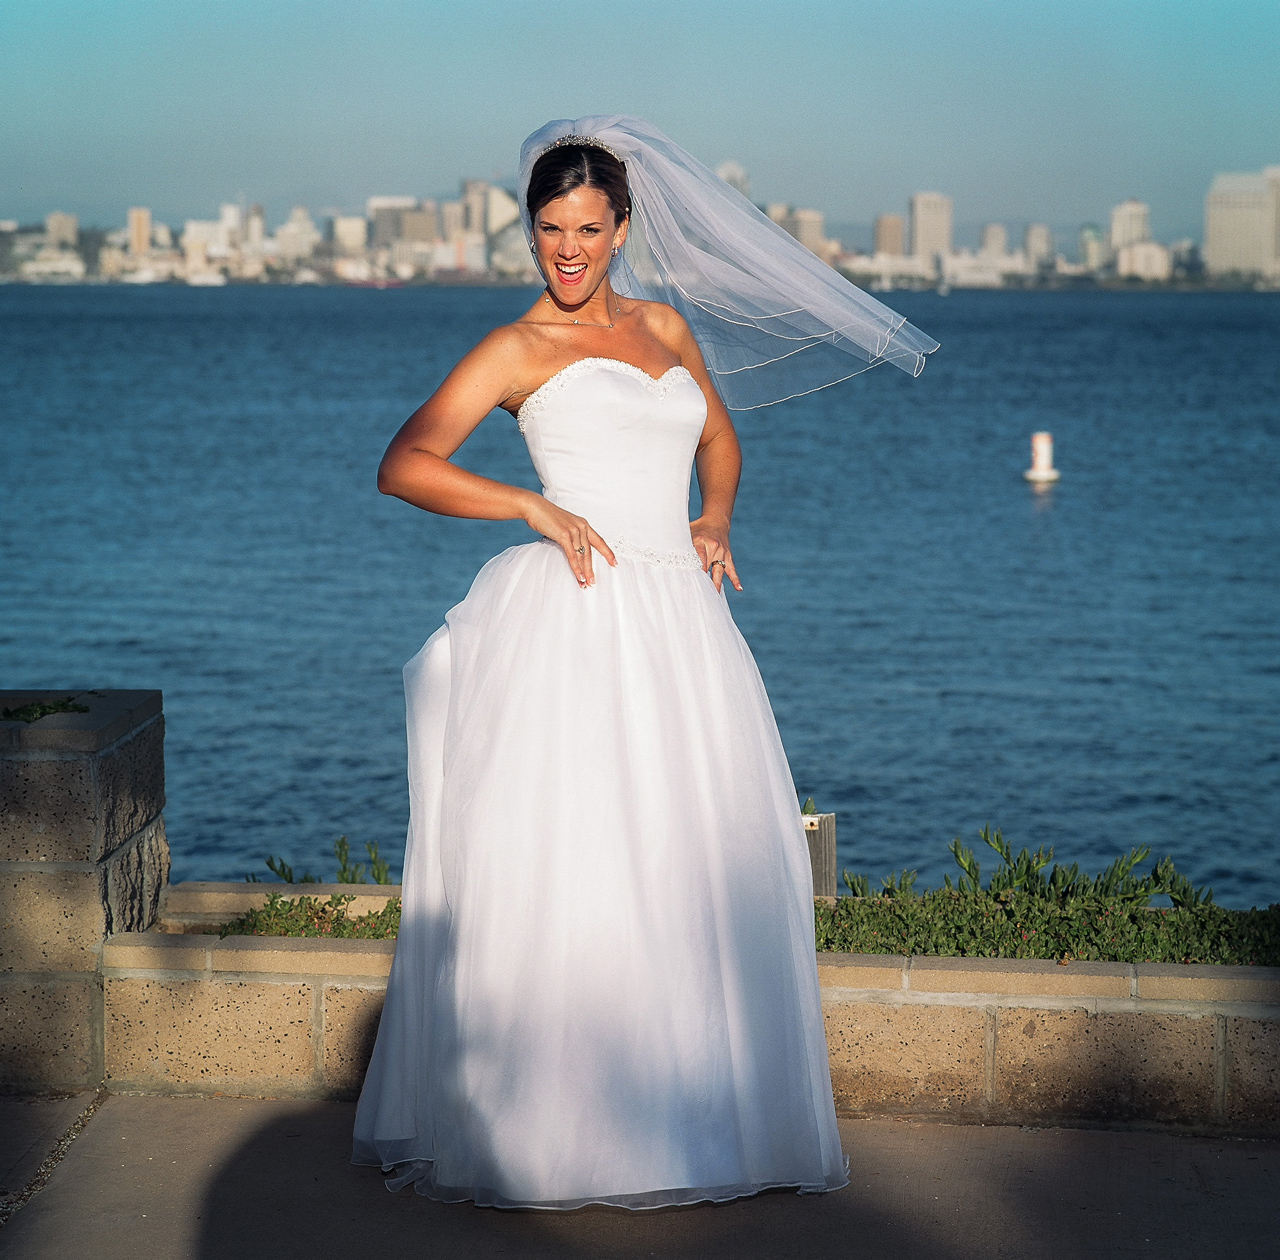 Unique Wedding Dress San Diego Photo - All Wedding Dresses ...